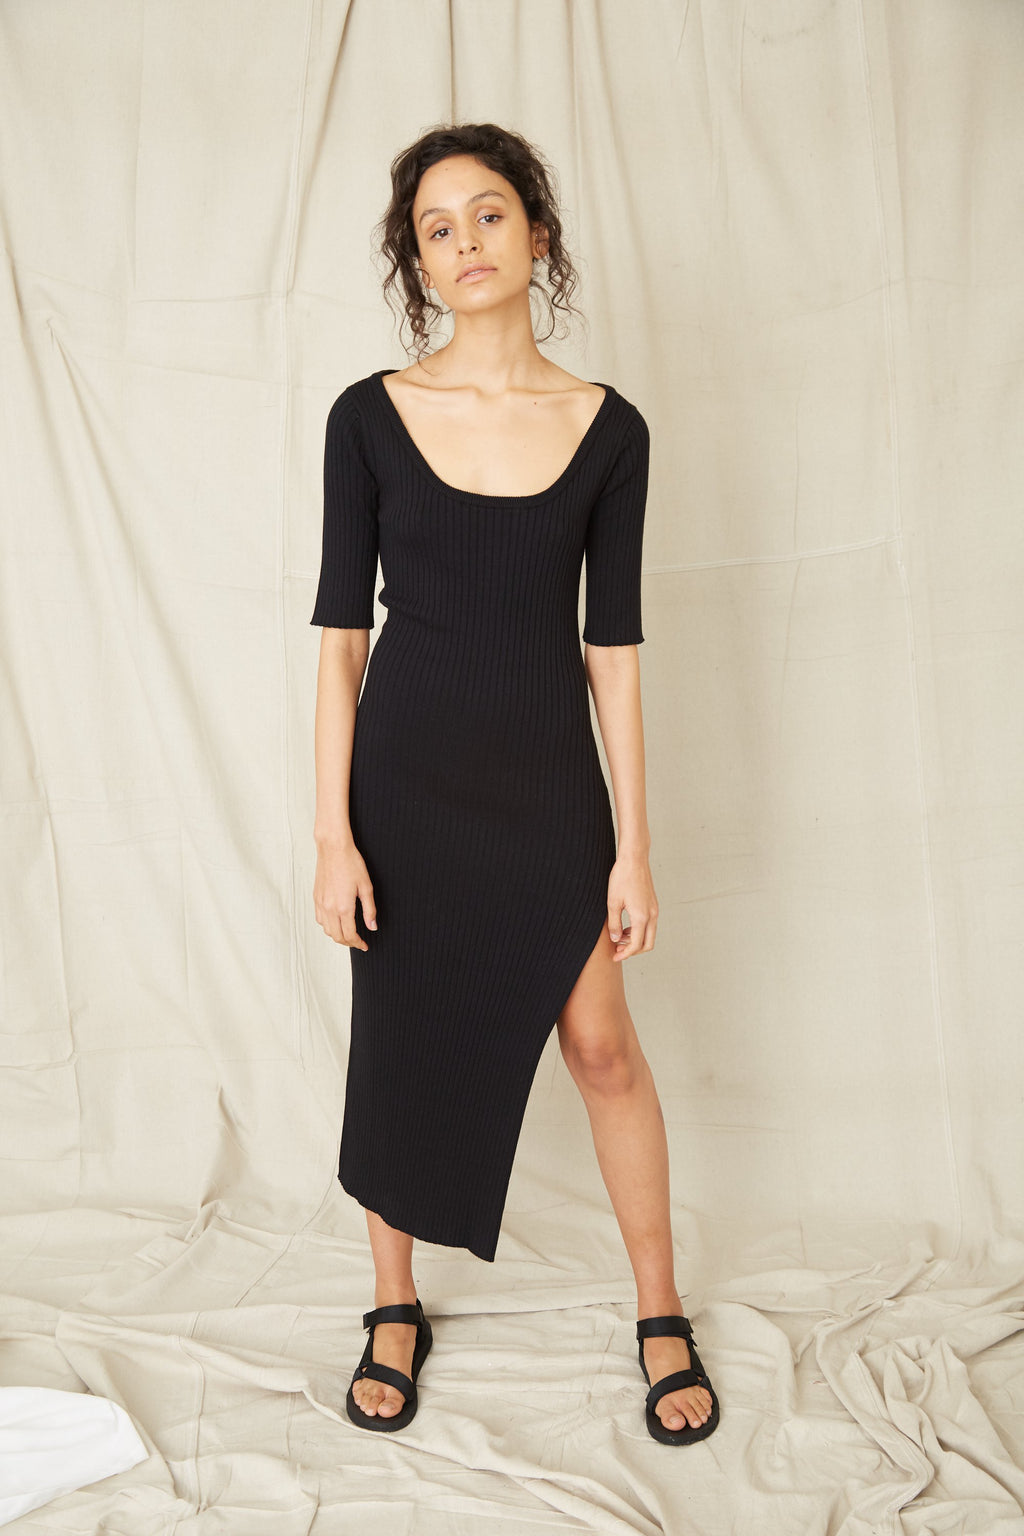 Third Form Dunes Rib Knit Scoop Maxi Dress - Black